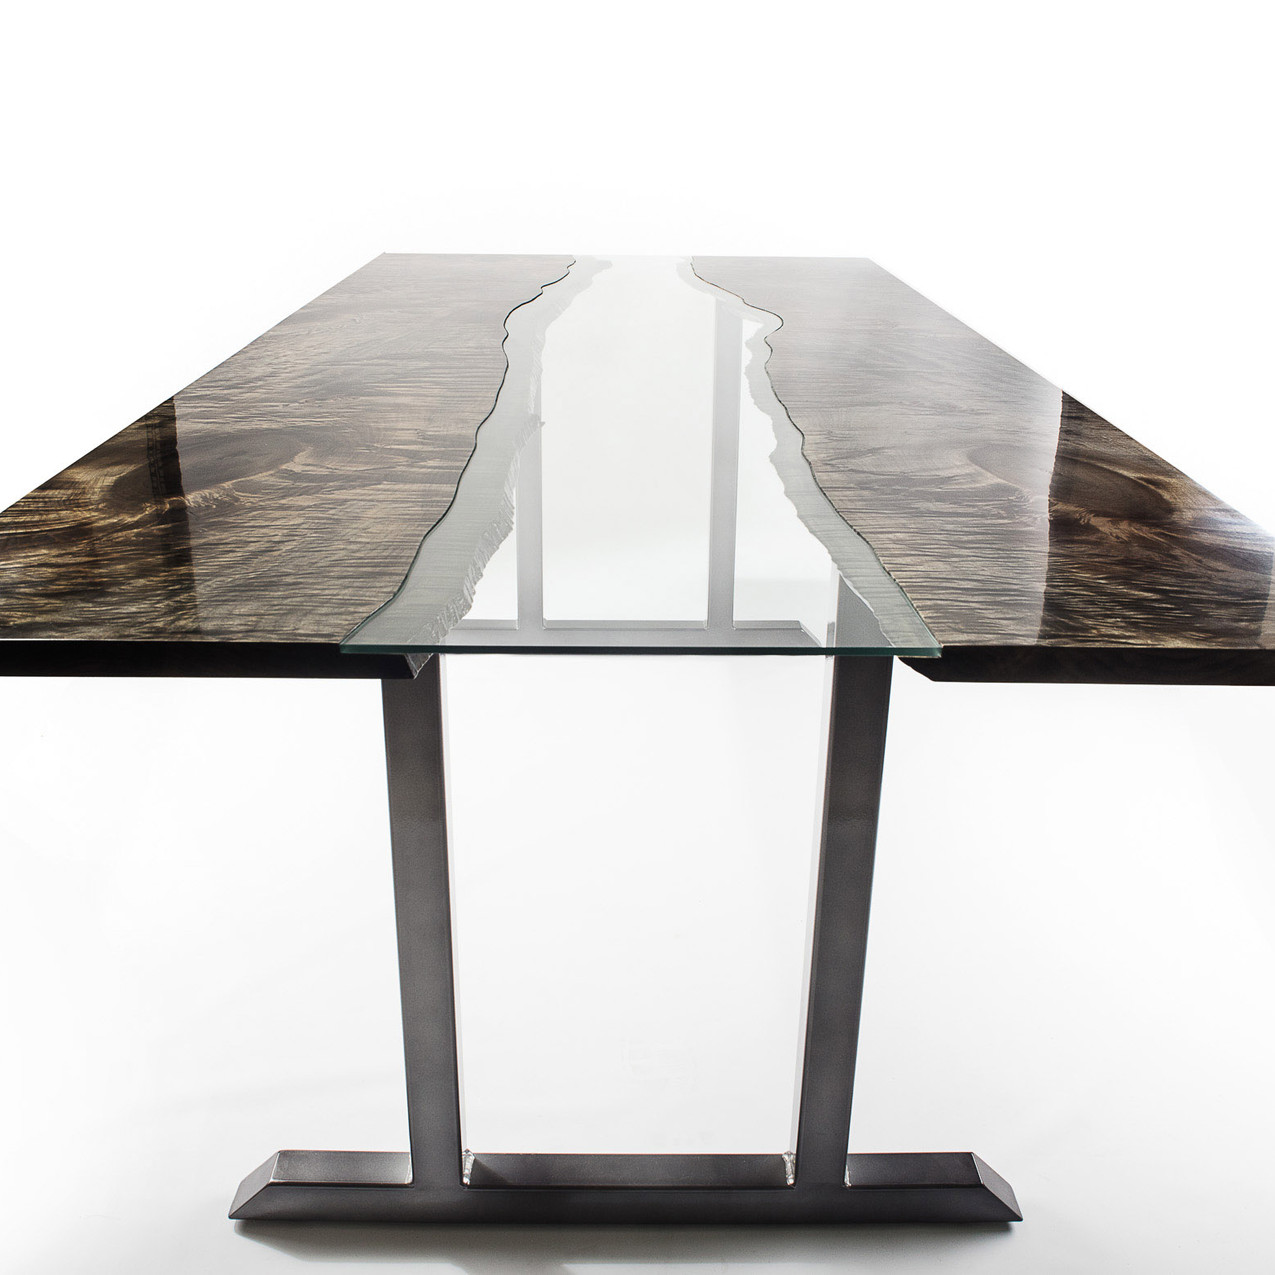 ebonized maple river table, glass inlaid in wood and steel cantilever frame. Organic Modern furniture